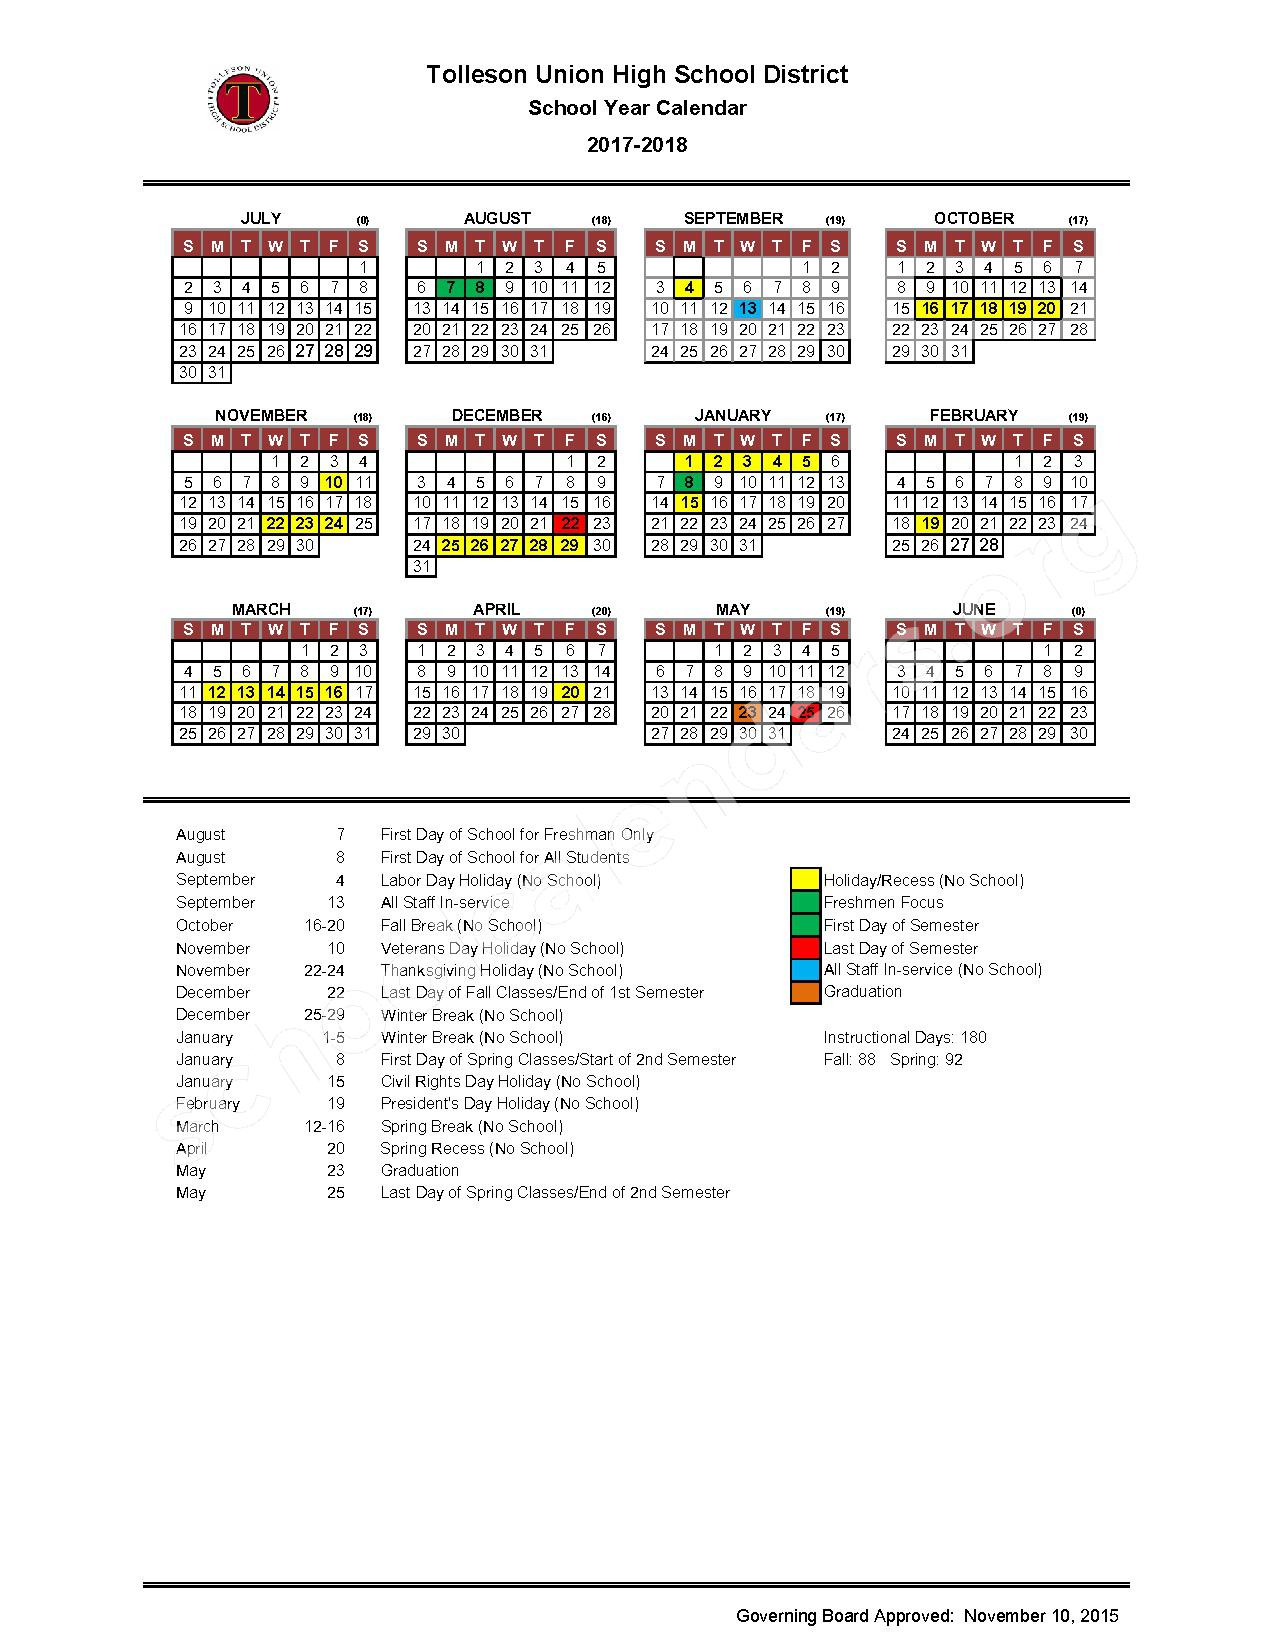 2017 - 2018 District Calendar – Tolleson Union High School District – page 1